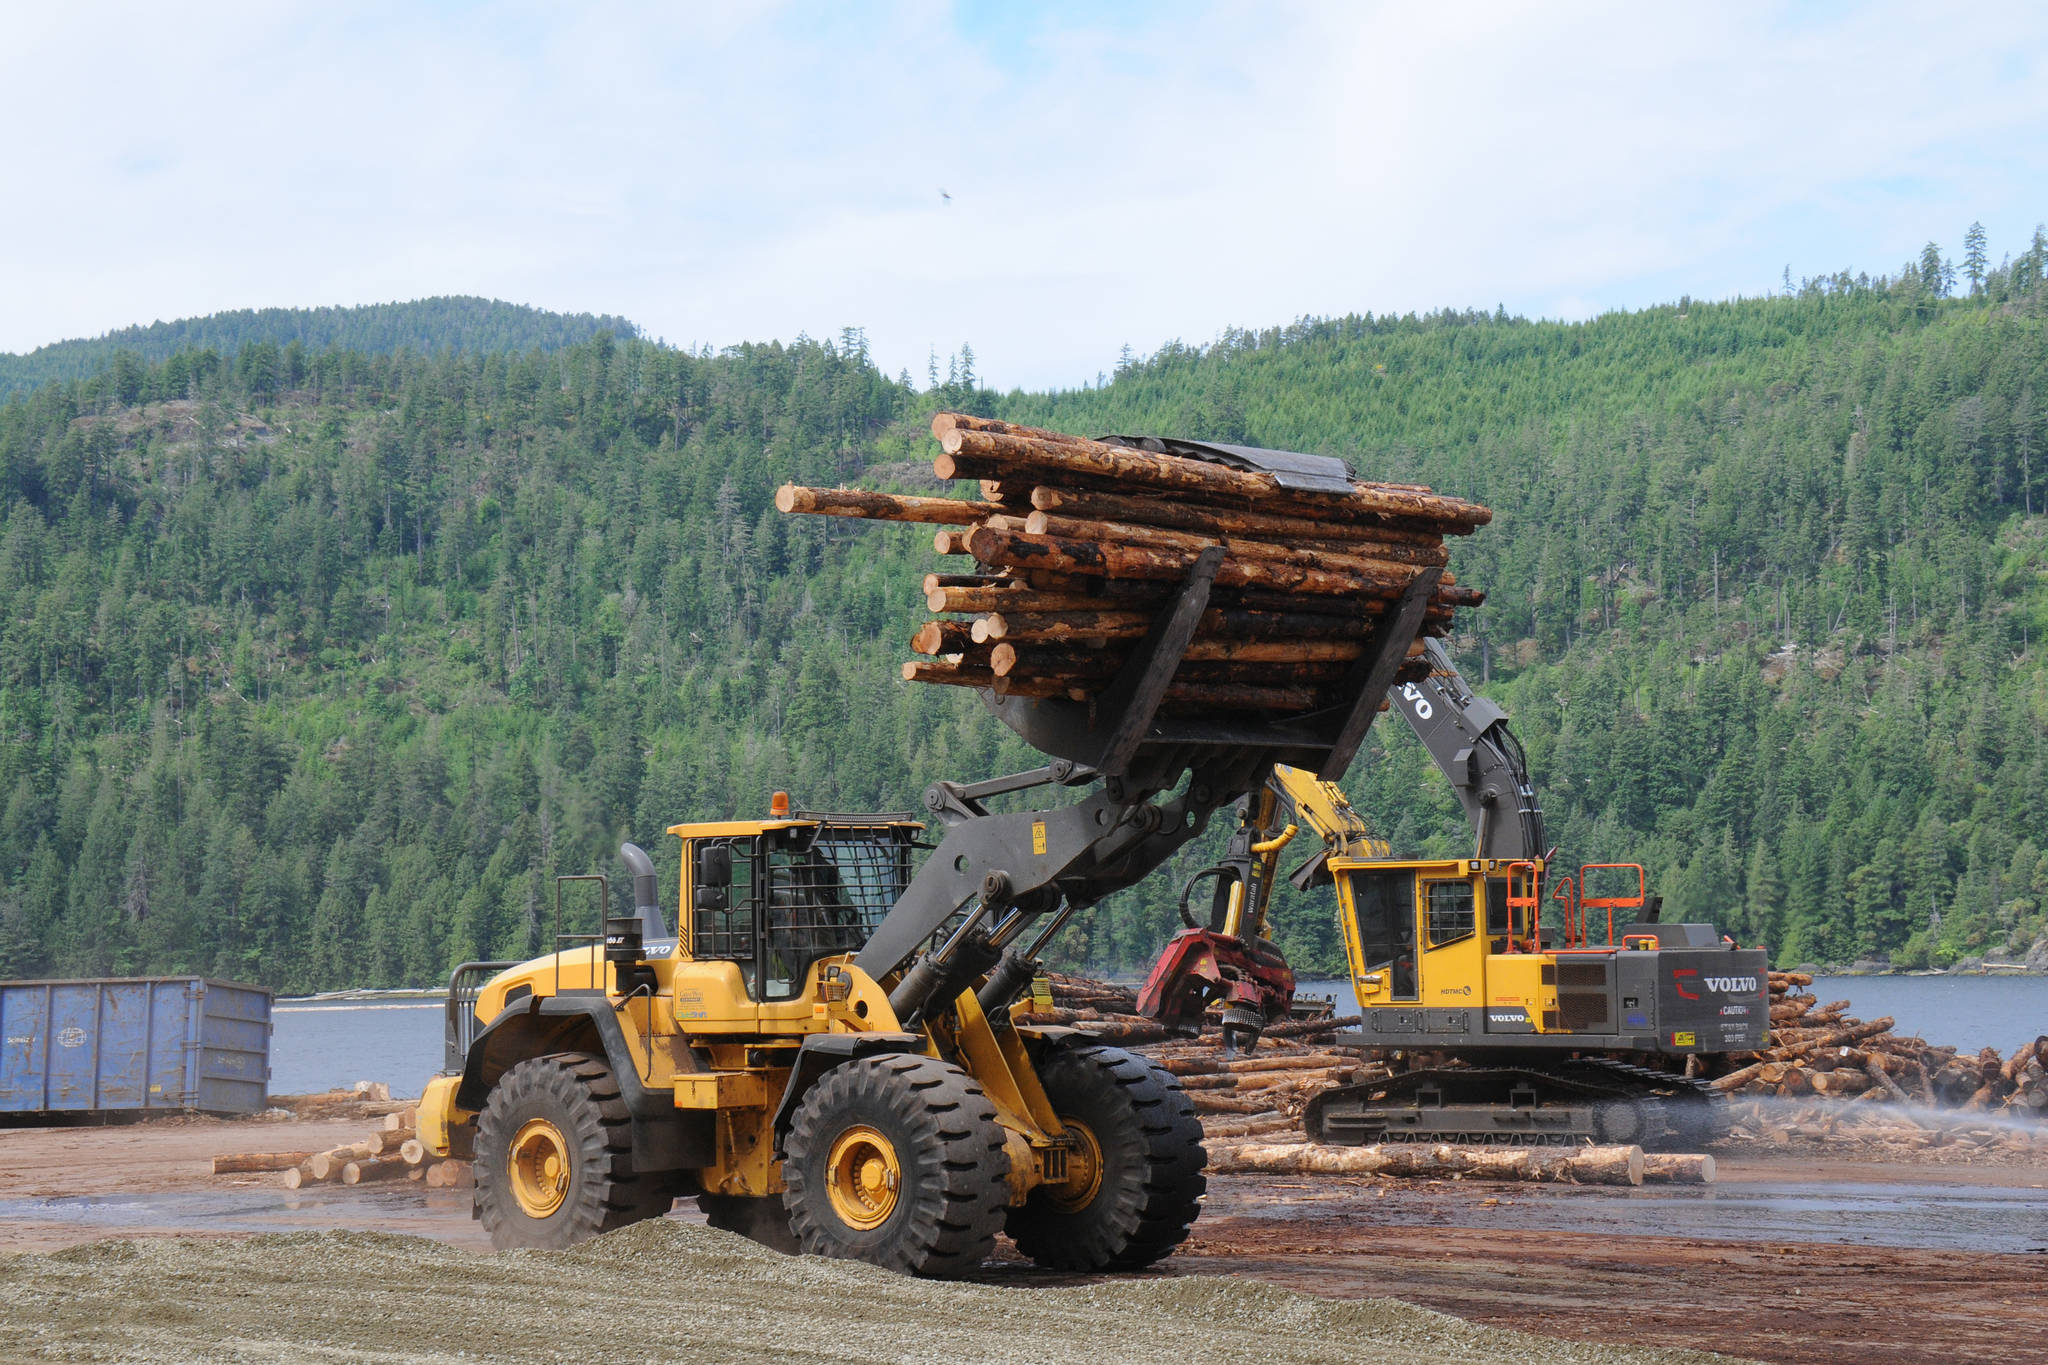 Crews at San Group's Coulson Sawmill site move a delivery of logs to be processed. (June 2, 2021) (SUSAN QUINN/ Alberni Valley News)